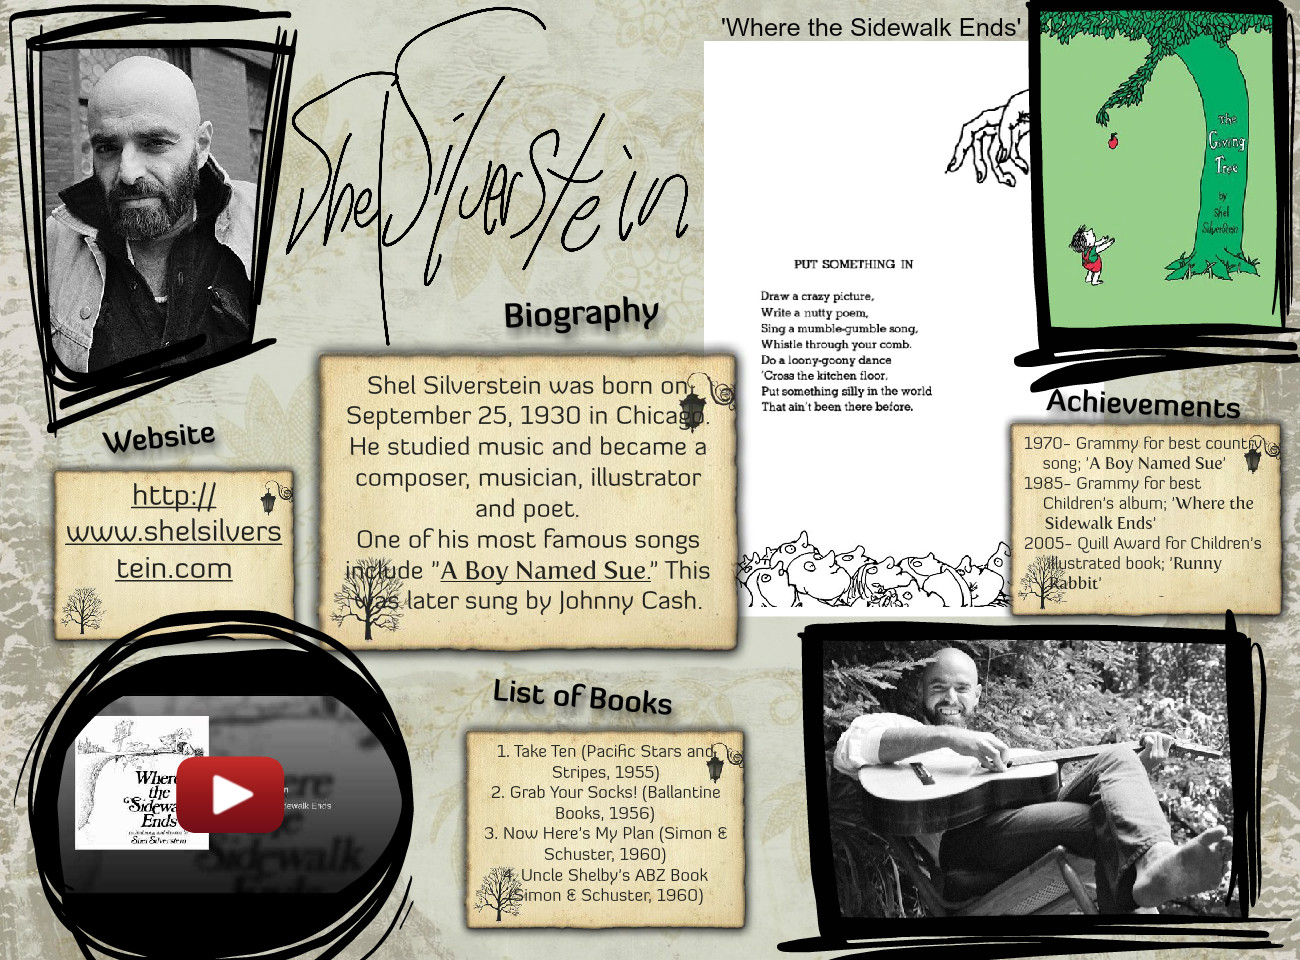 Shel Silverstein Biography: Shel Silverstein Biography: Text, Images, Music, Video